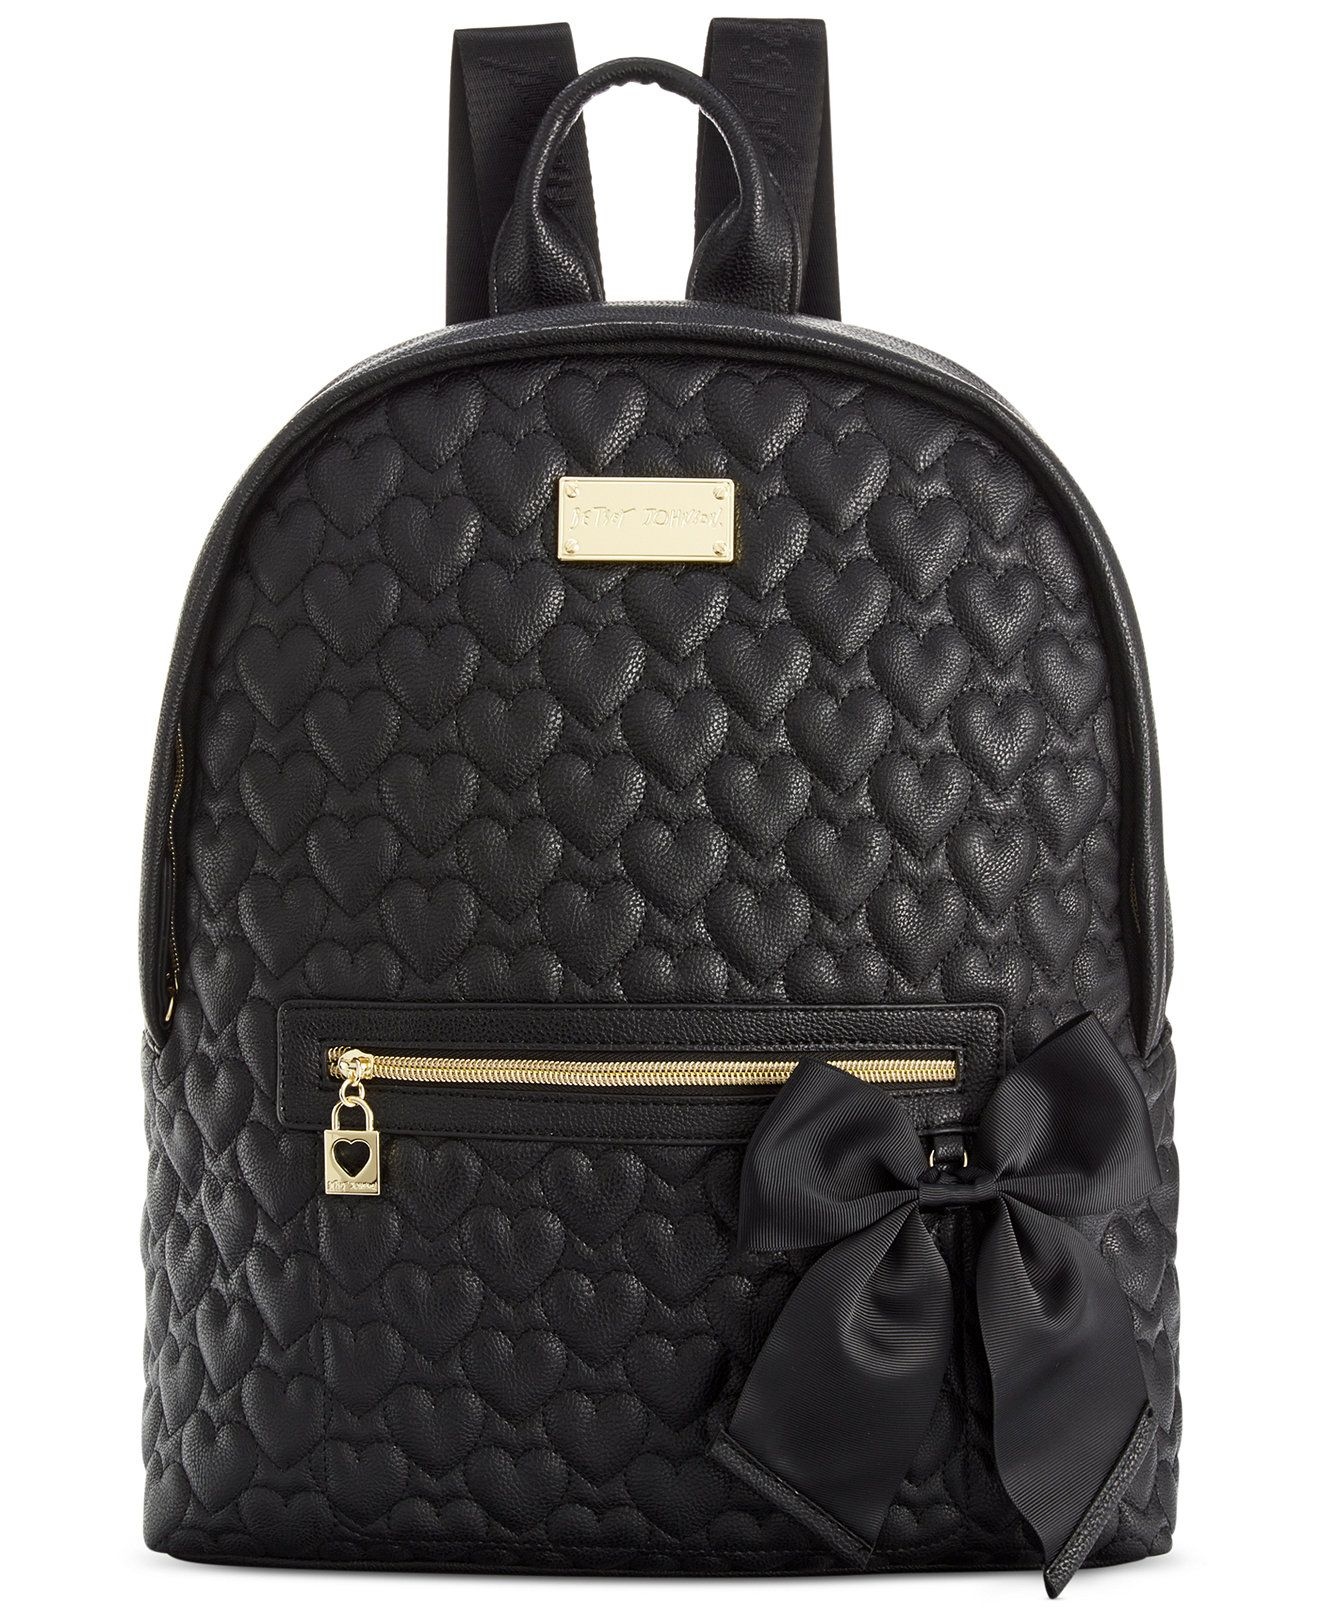 Betsey Johnson Macy s Exclusive Quilted Backpack - Handbags   Accessories -  Macy s b46e3e3dd8069